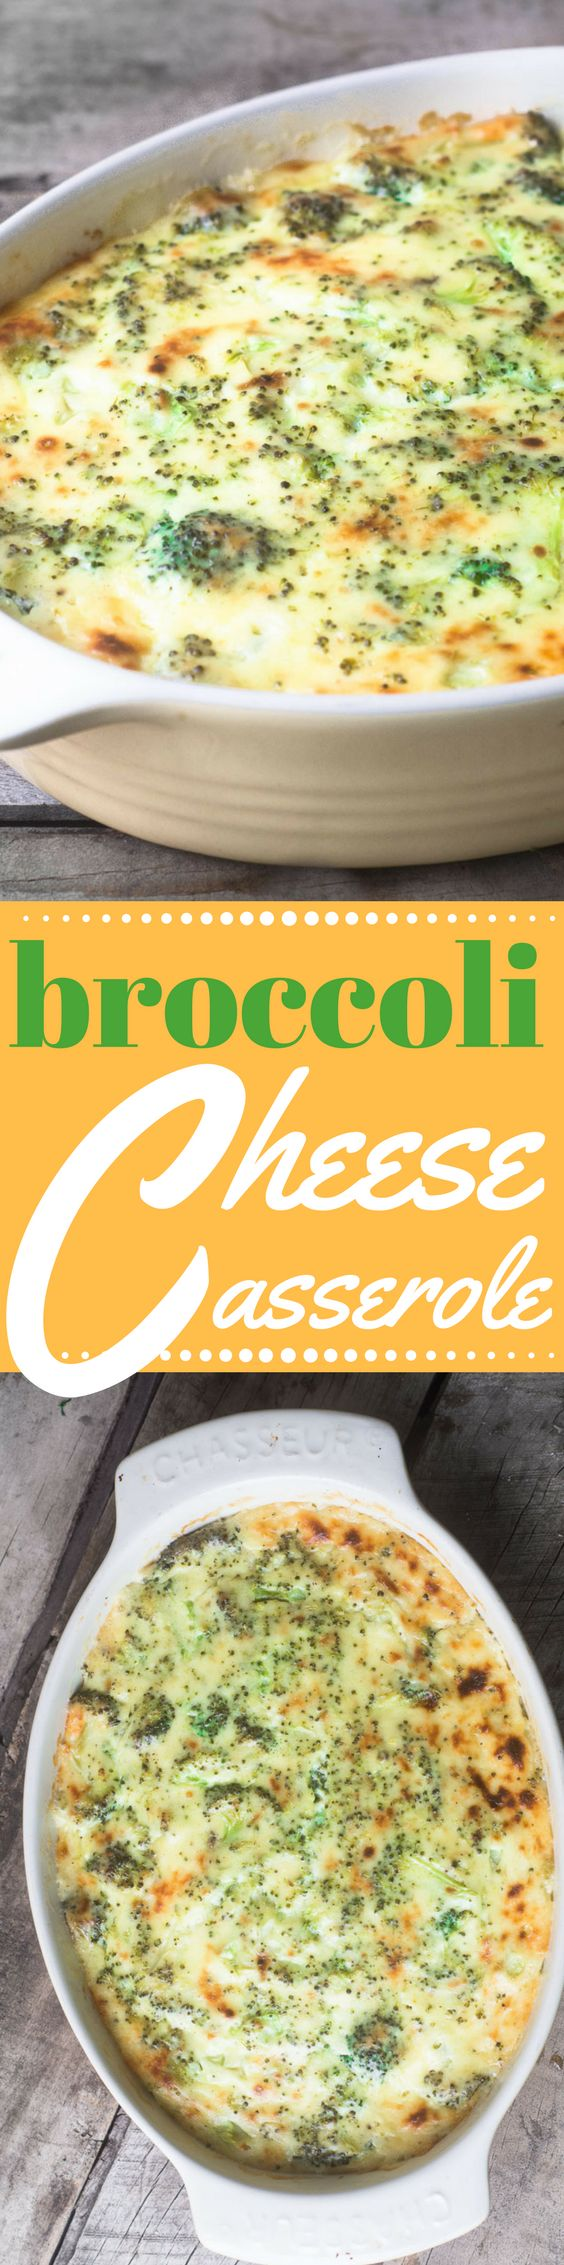 Broccoli Cheese Casserole made lighter and healthier, entirely from scratch, no cans or artificial ingredients! ~ theviewfromgreatisland.com